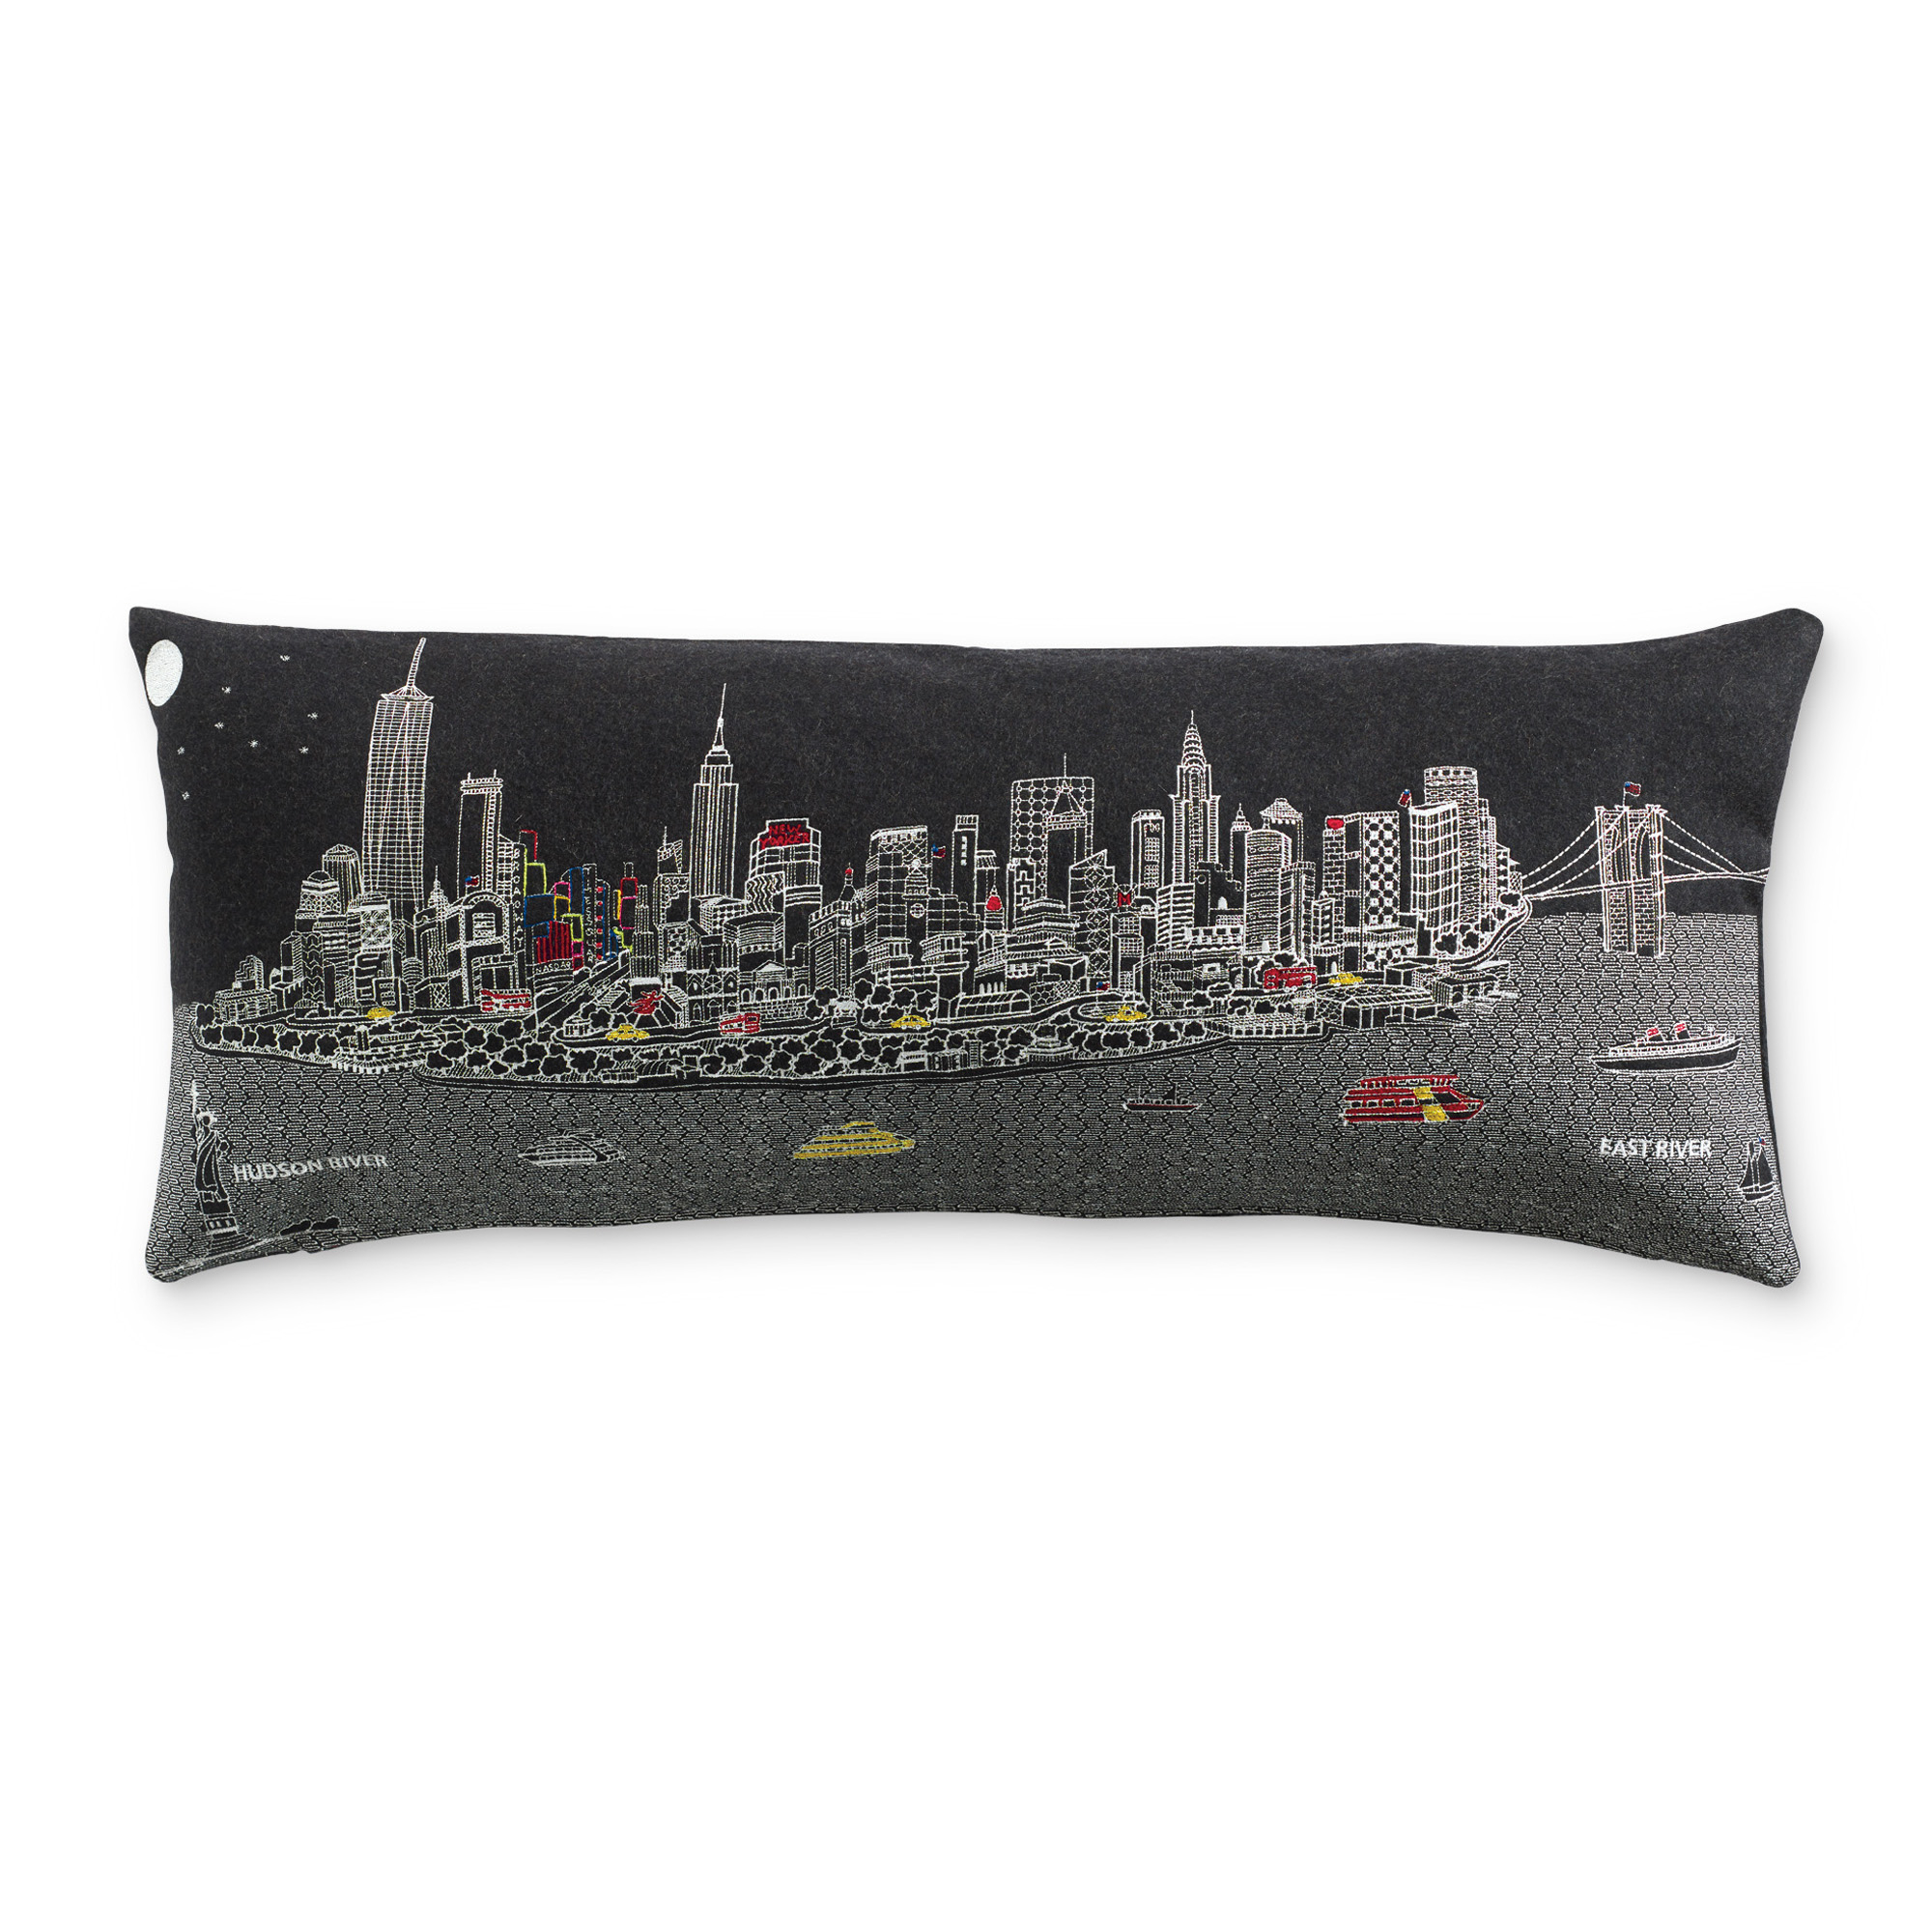 City Skyline Pillow, New York